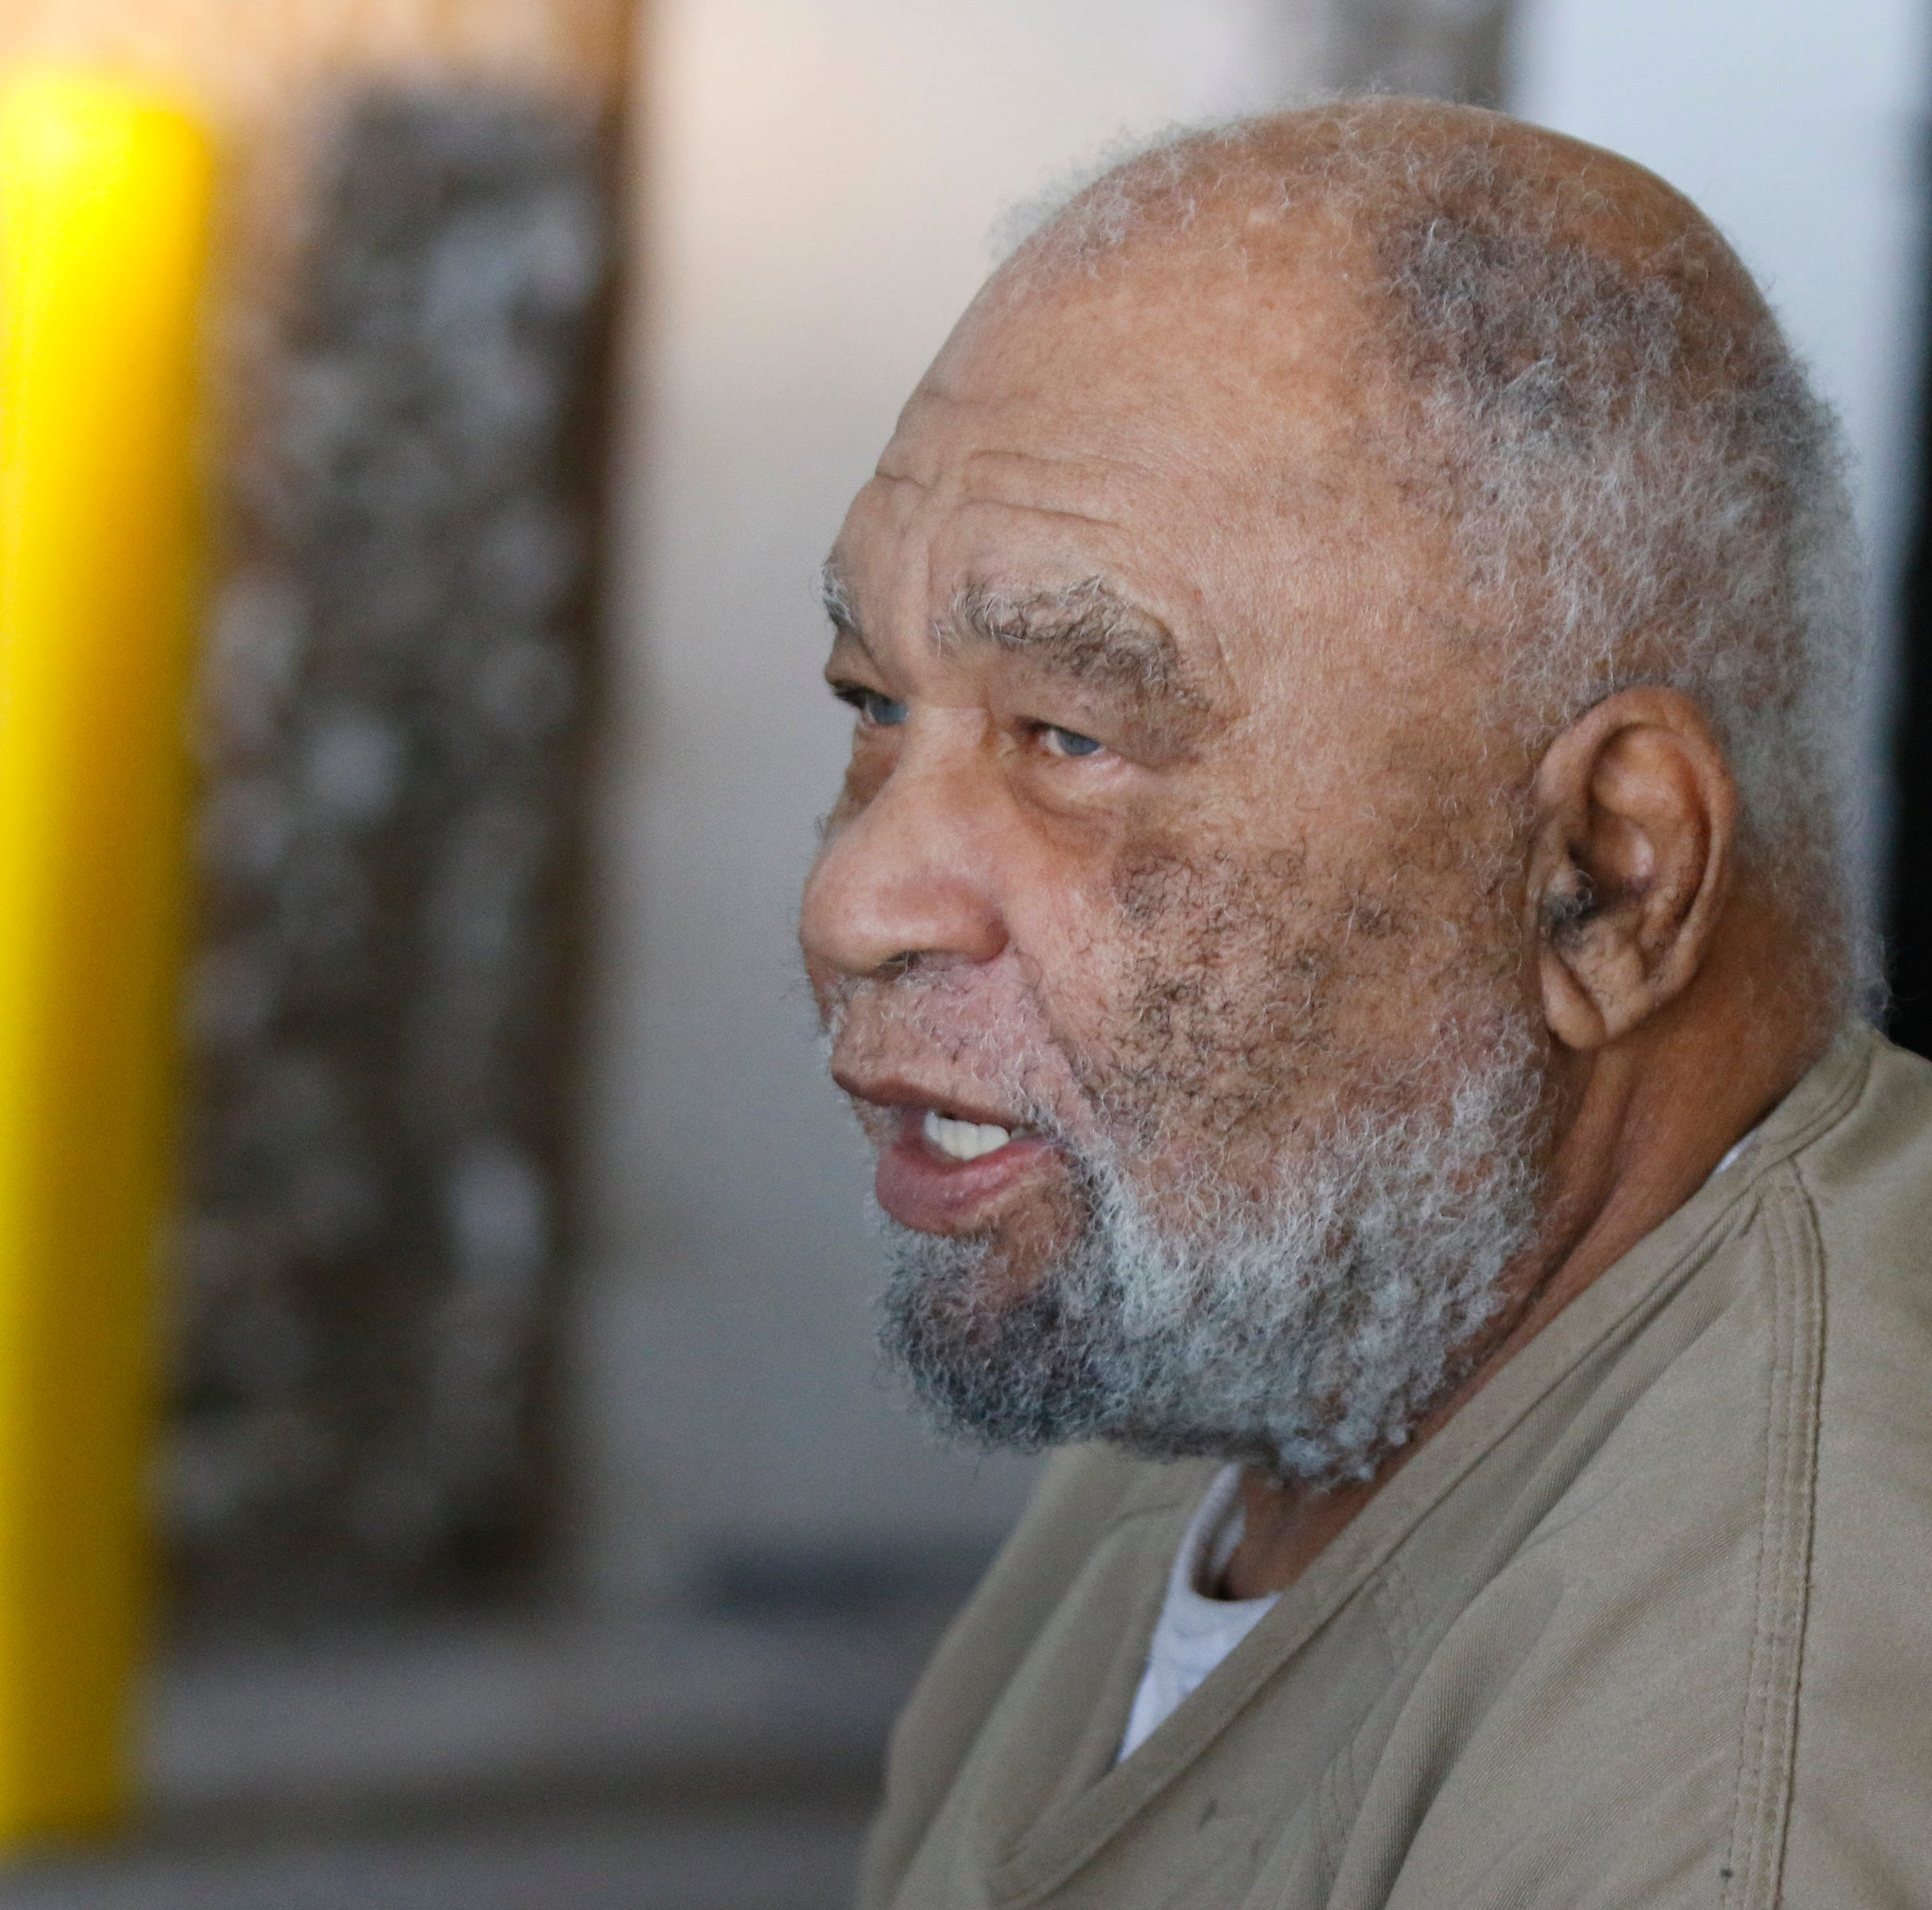 Prolific serial killer Samuel Little likely to be indicted in murder of Perry teen